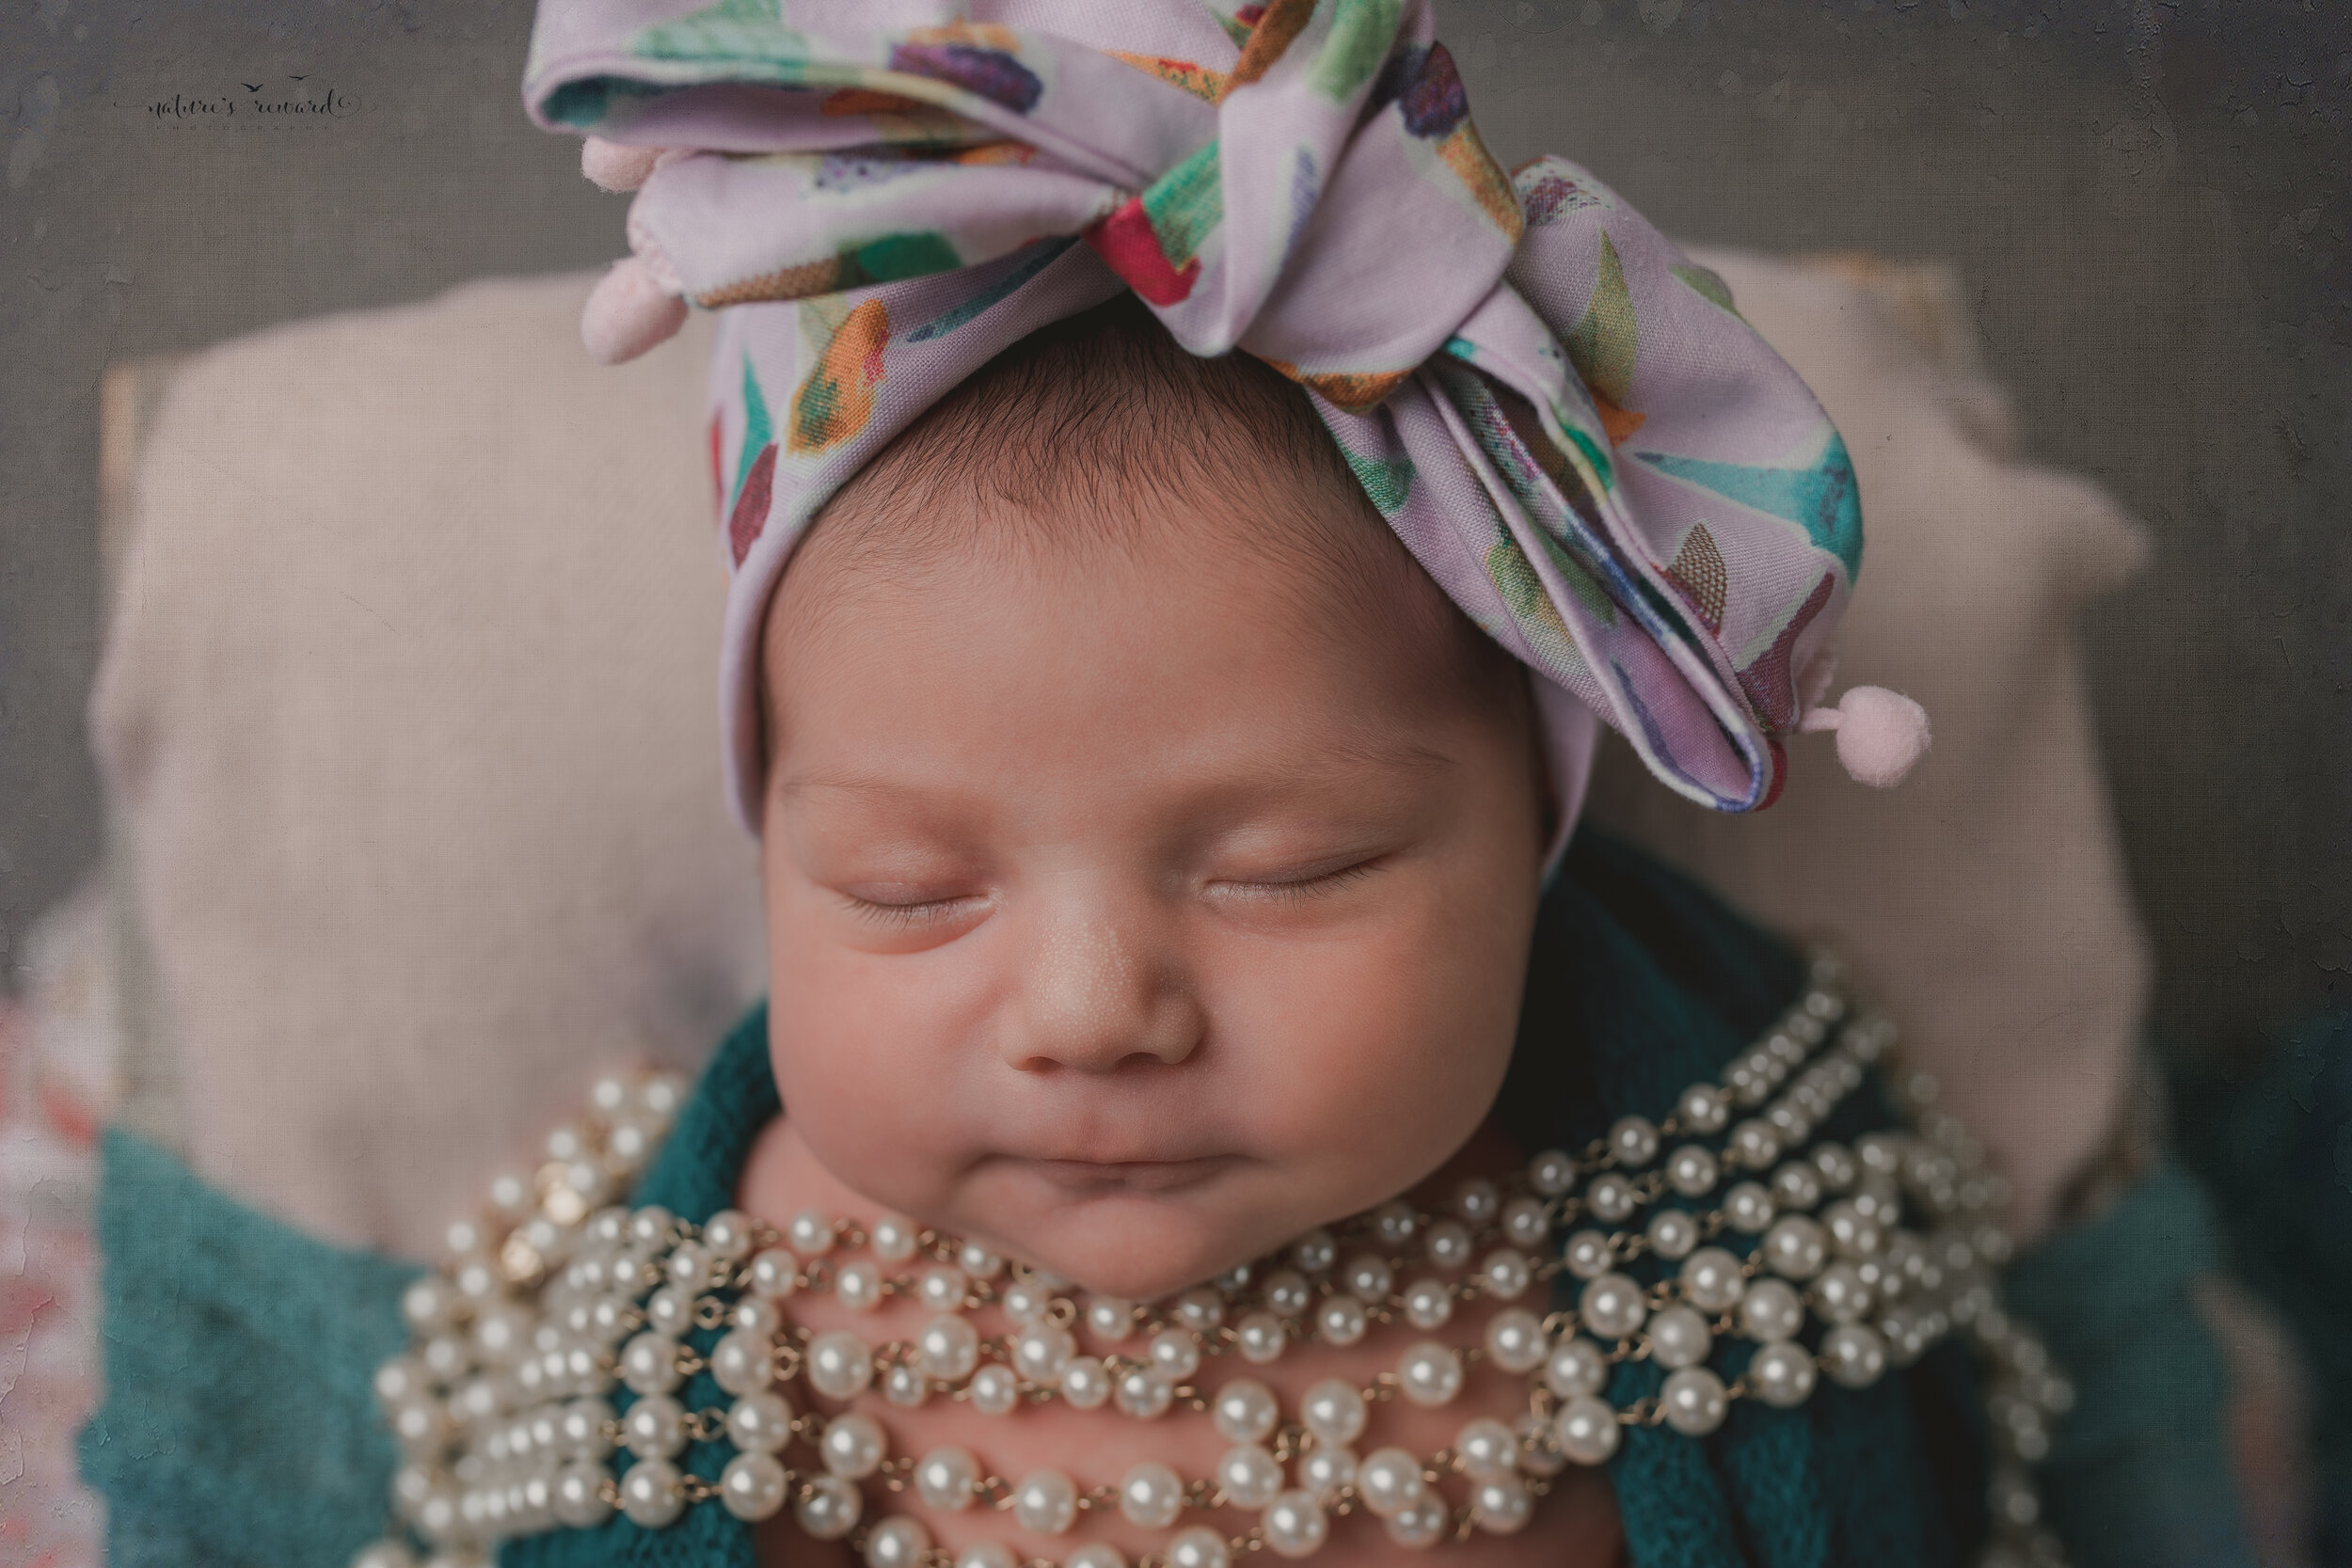 A newborn baby girl in the bow her mother brought for her in this portrait by Nature's Reward Photography